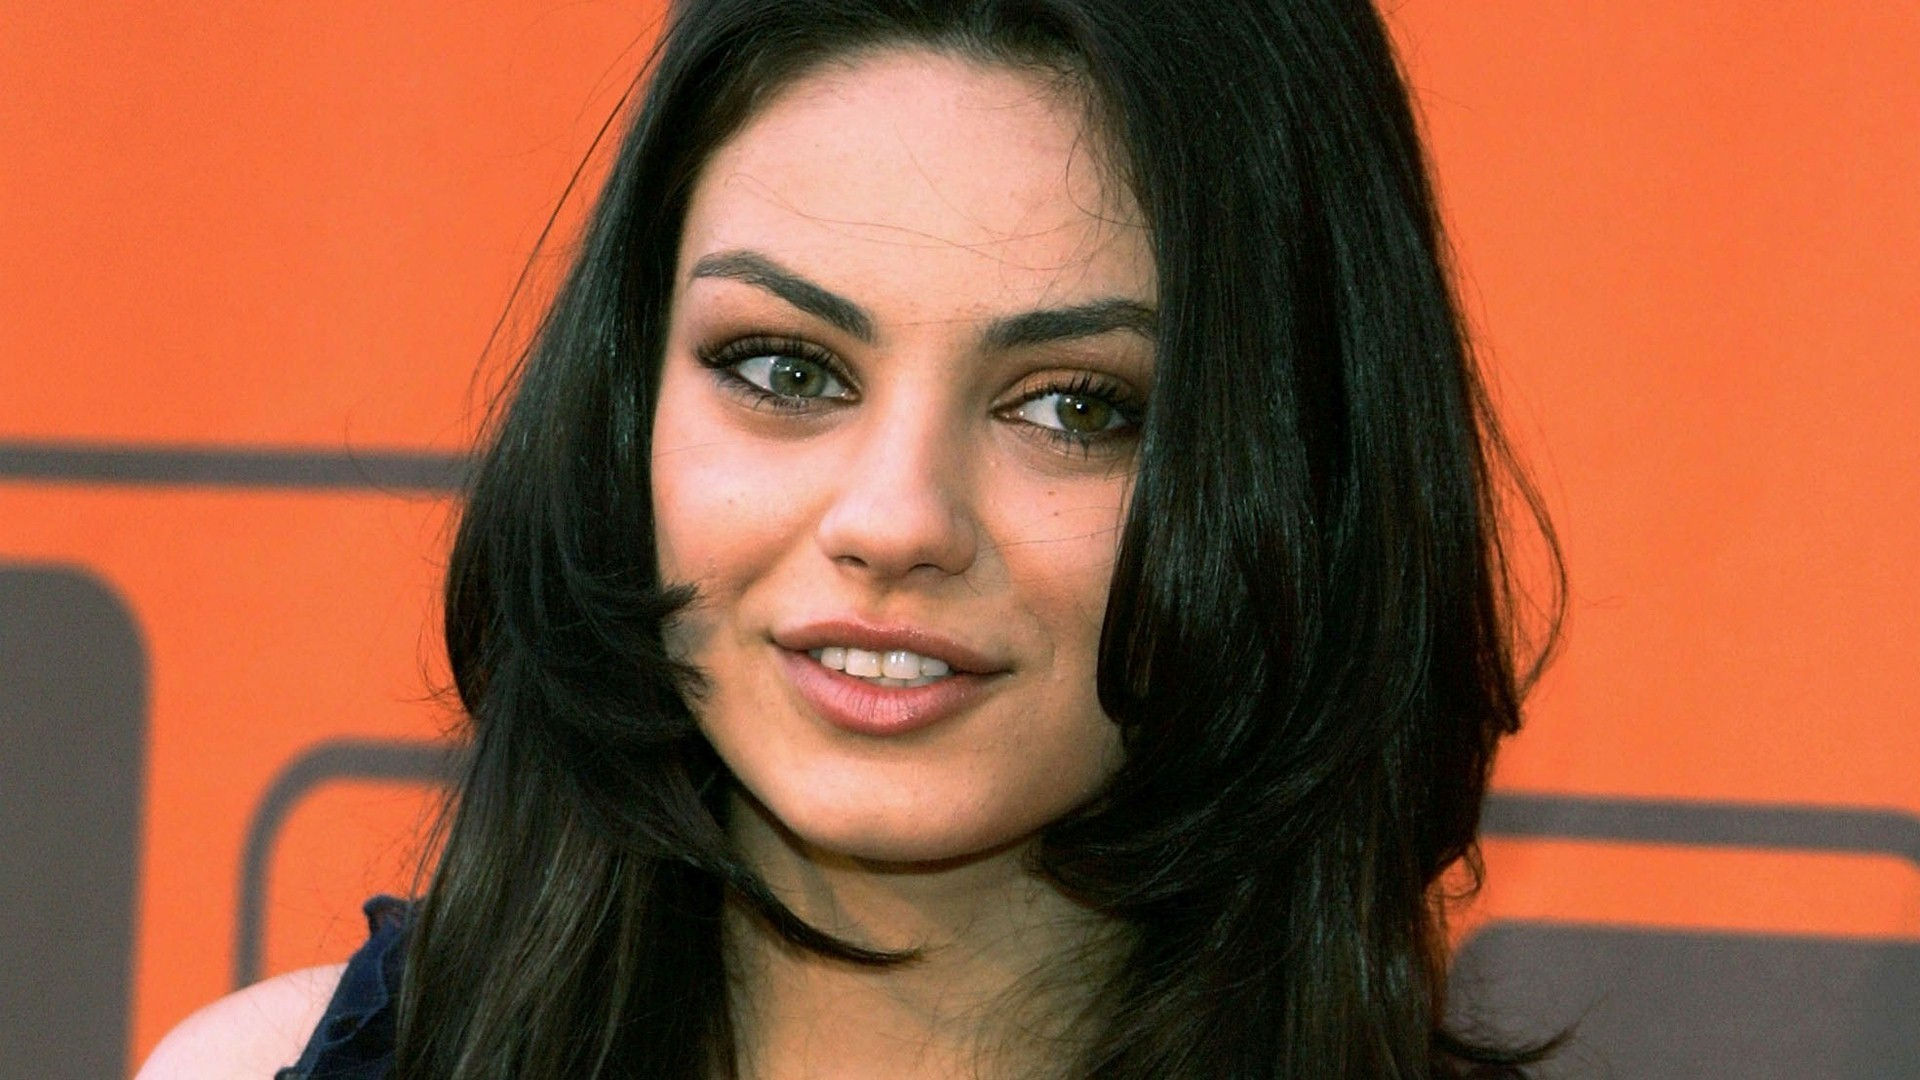 Thats 70s Show Actress , HD Wallpaper & Backgrounds